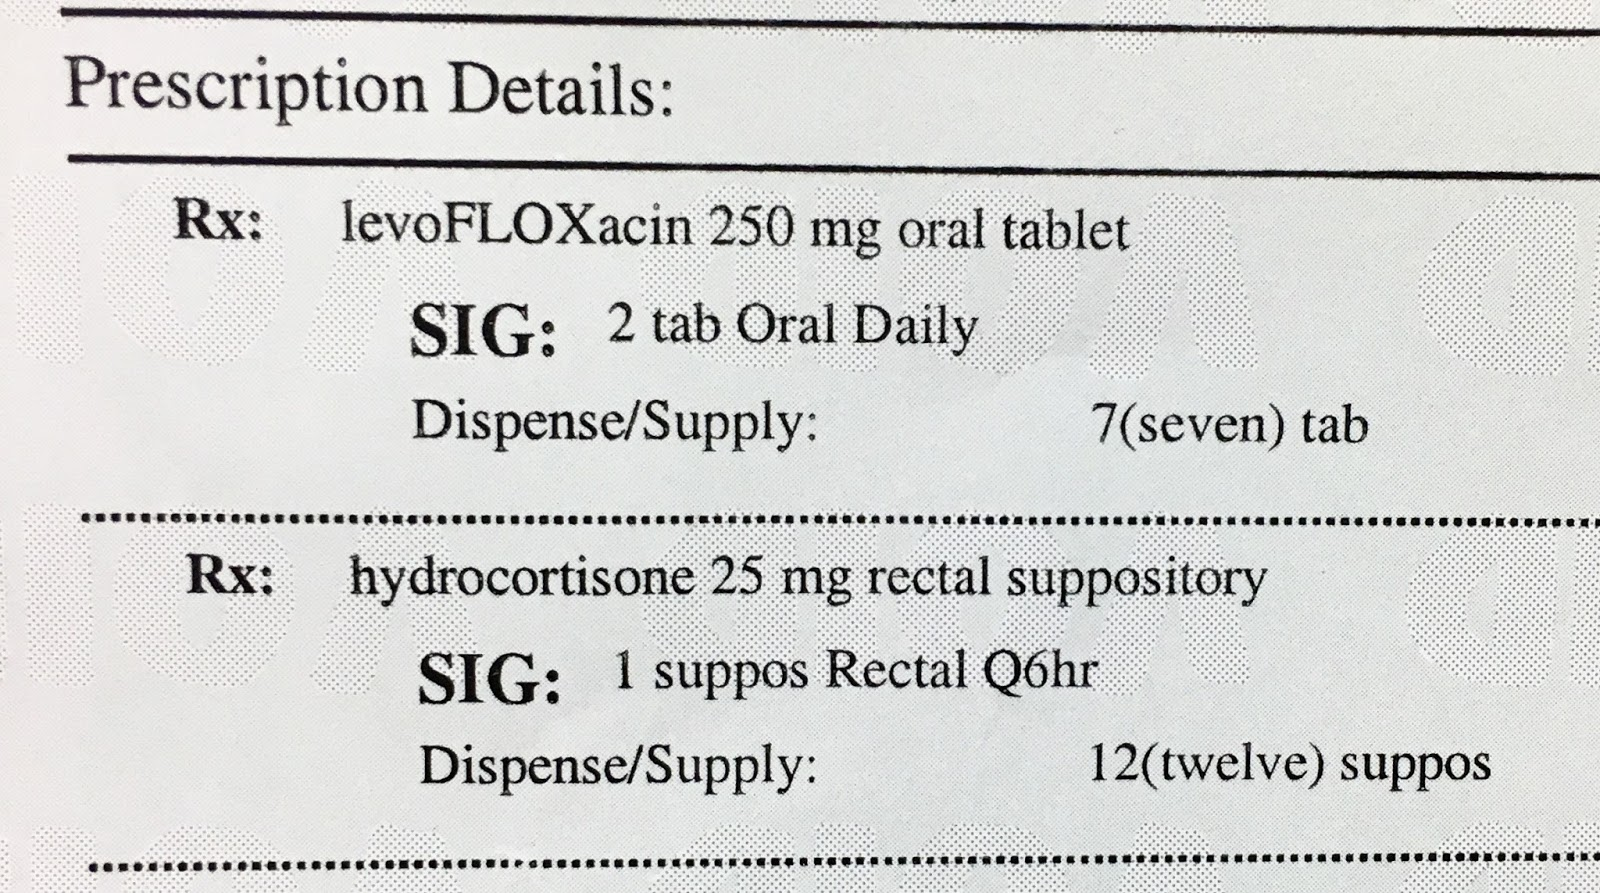 Crazy rxman june 2017 as it turns out this levaquin rx was meant to be a seven day supply not seven tabs as shown hexwebz Image collections